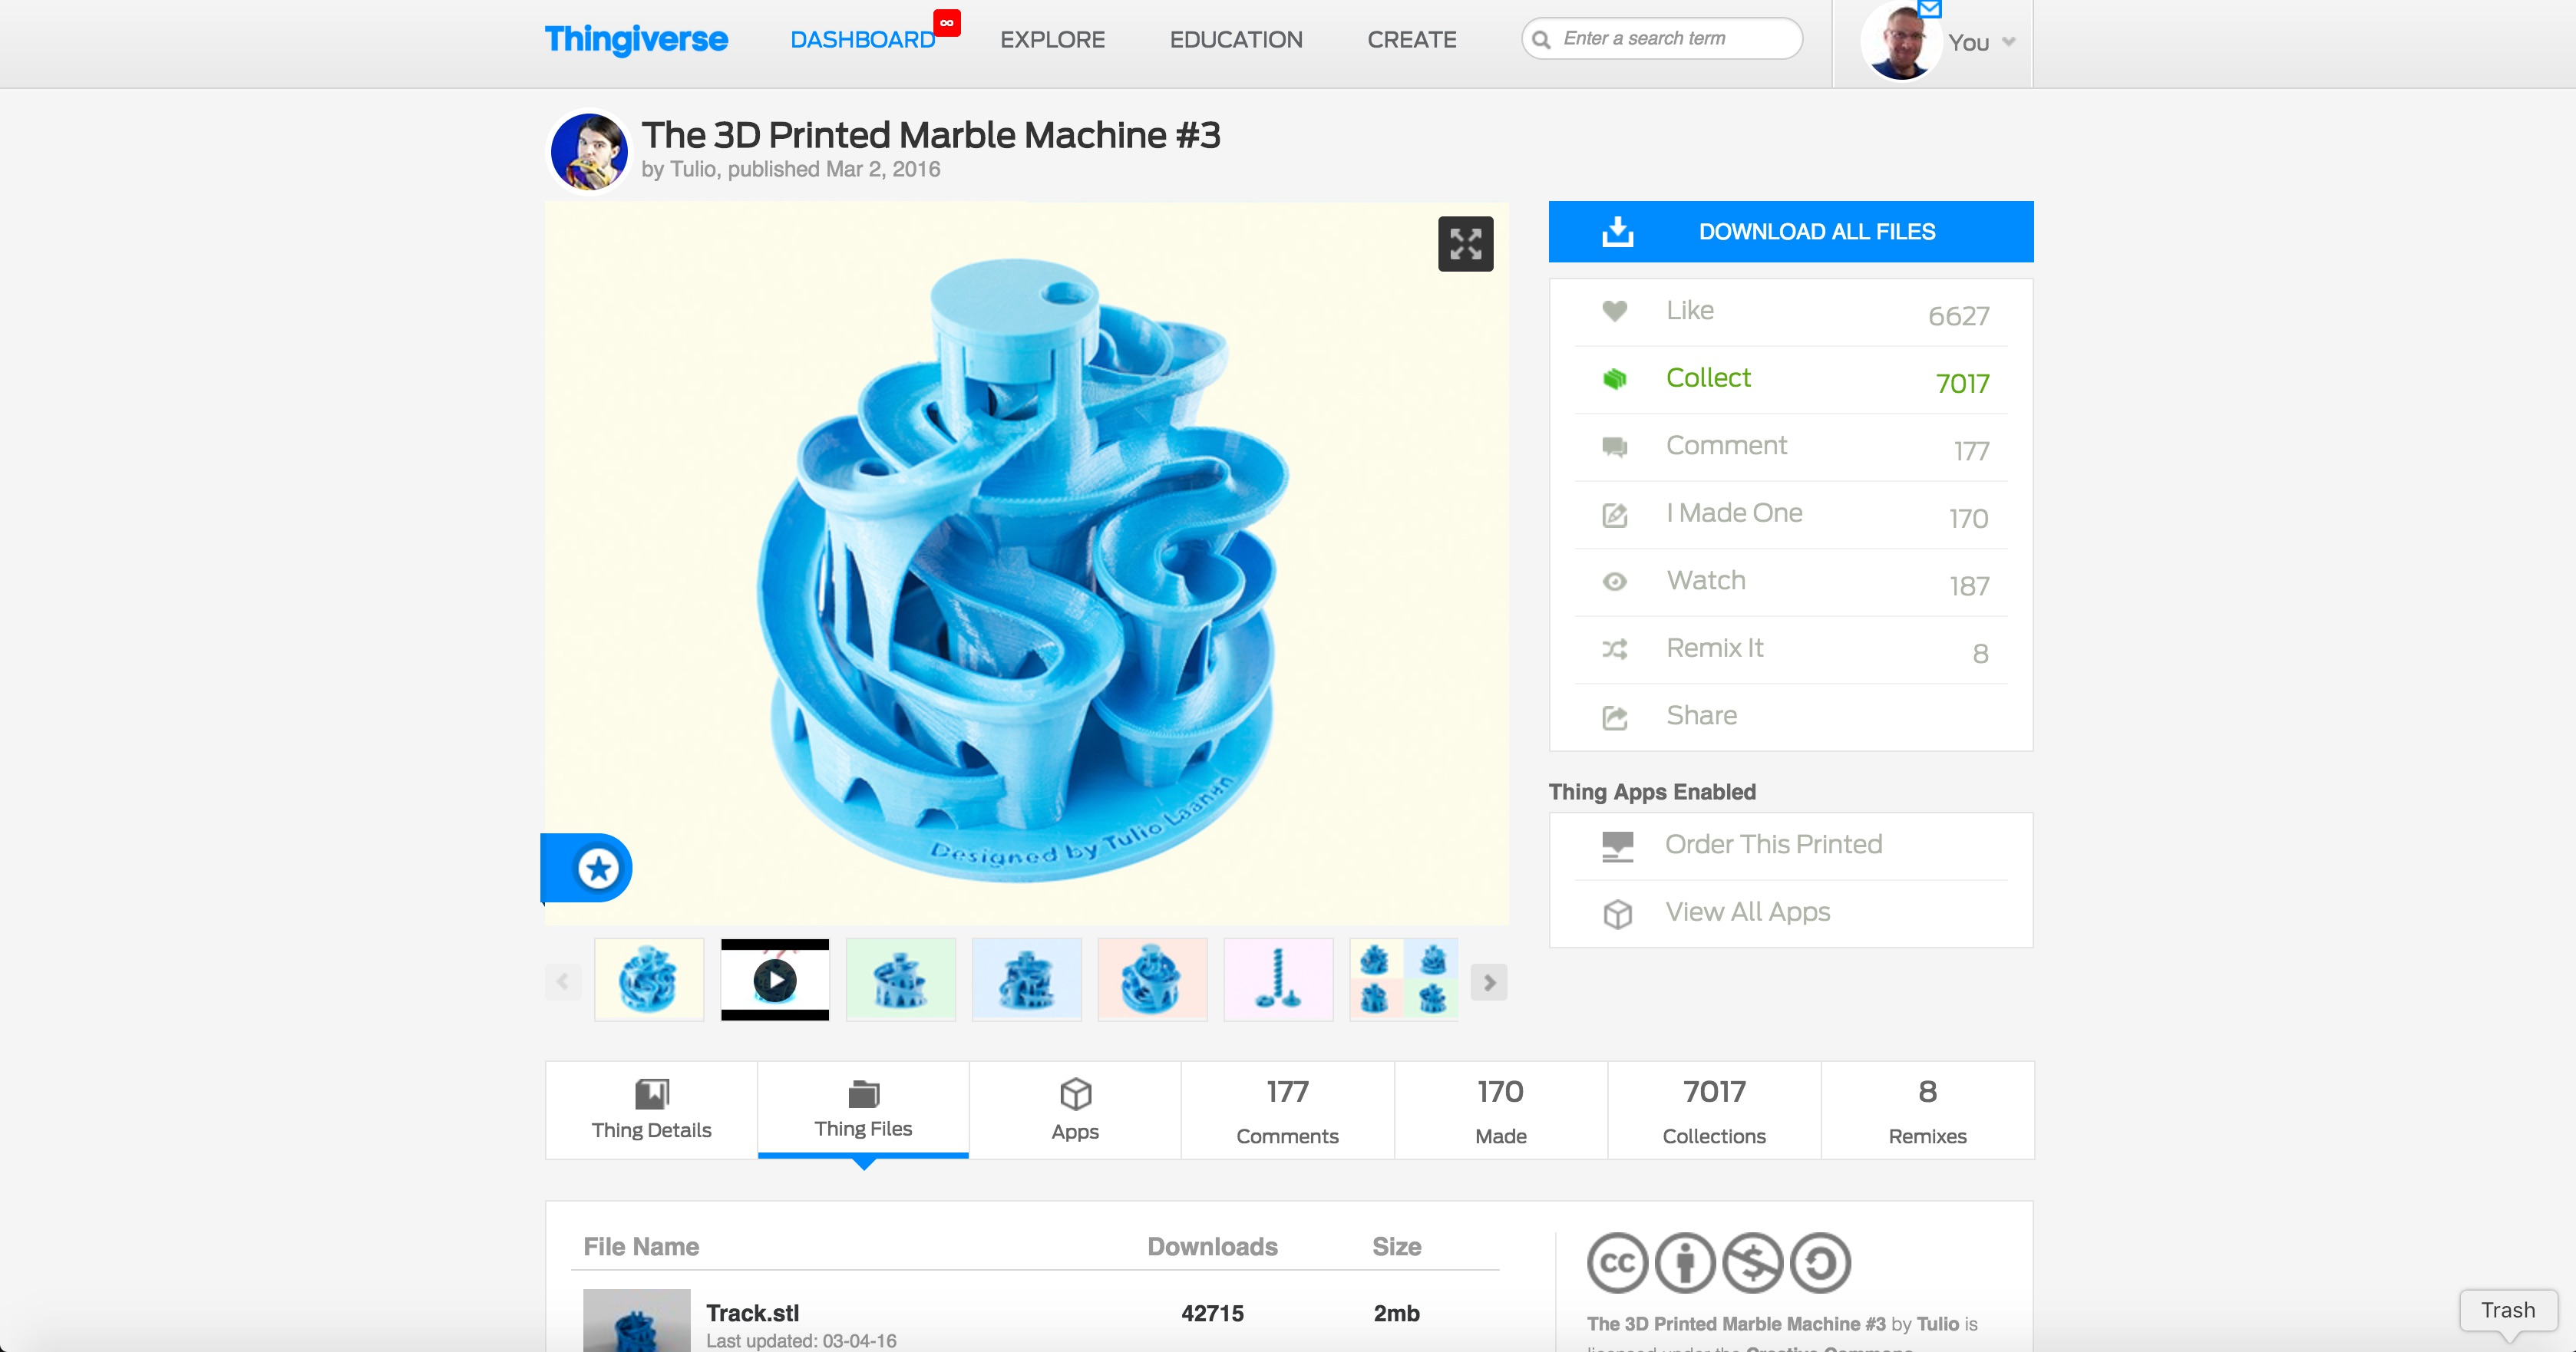 Library Workshop - Creating a 3D Printing Time-Lapse - 3D Universe